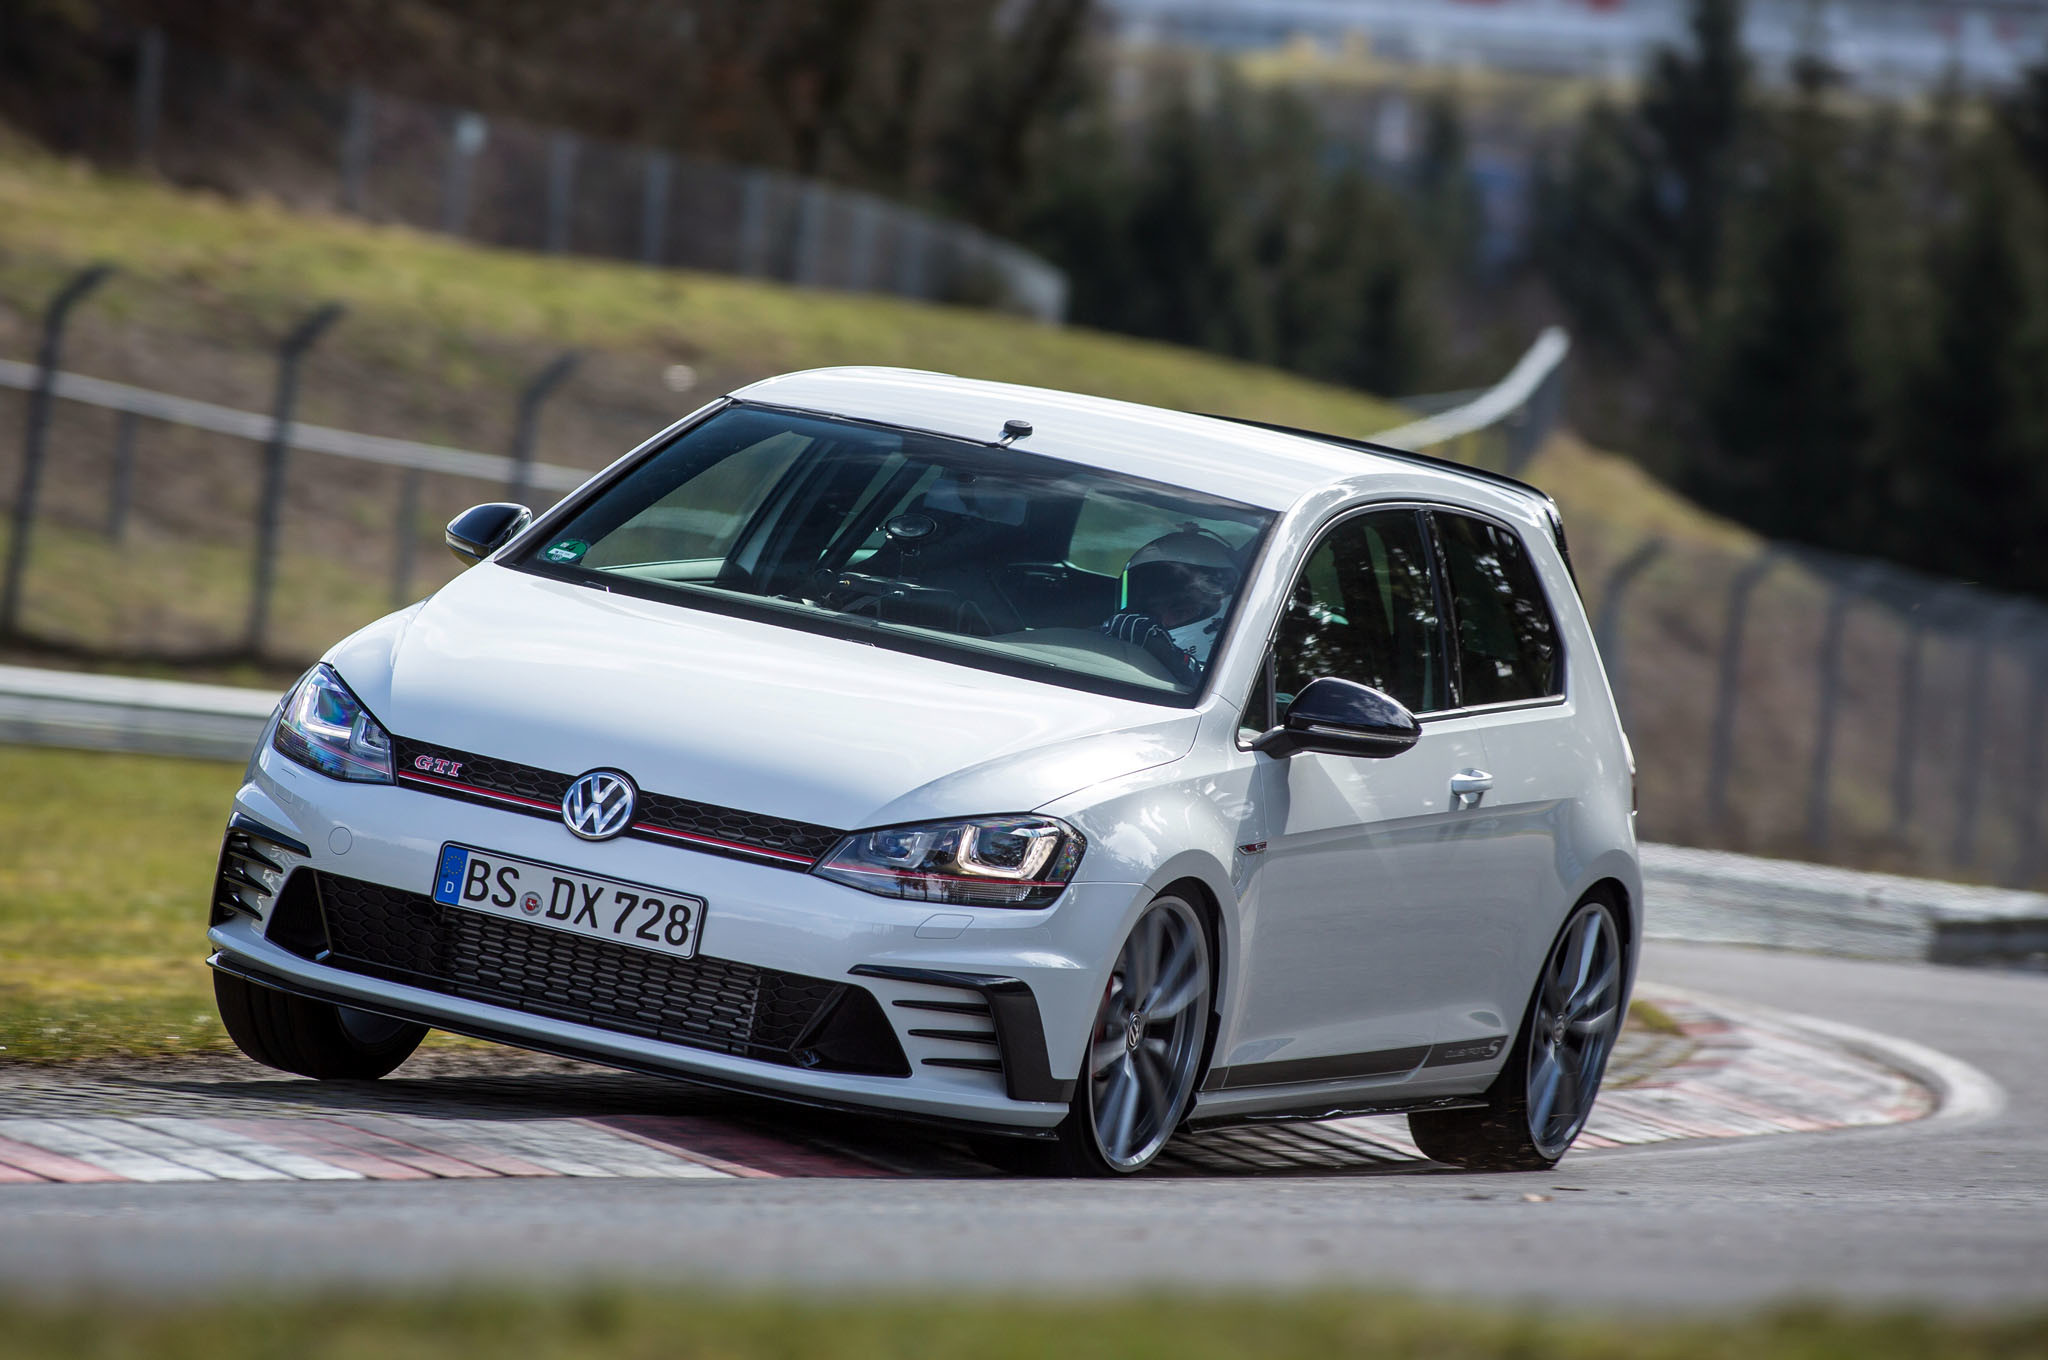 Res: 2048x1360, 1920x1280 auto cars volkswagen golf gti wallpapers auto city parking garage  cars wallpapers golf tuning auto